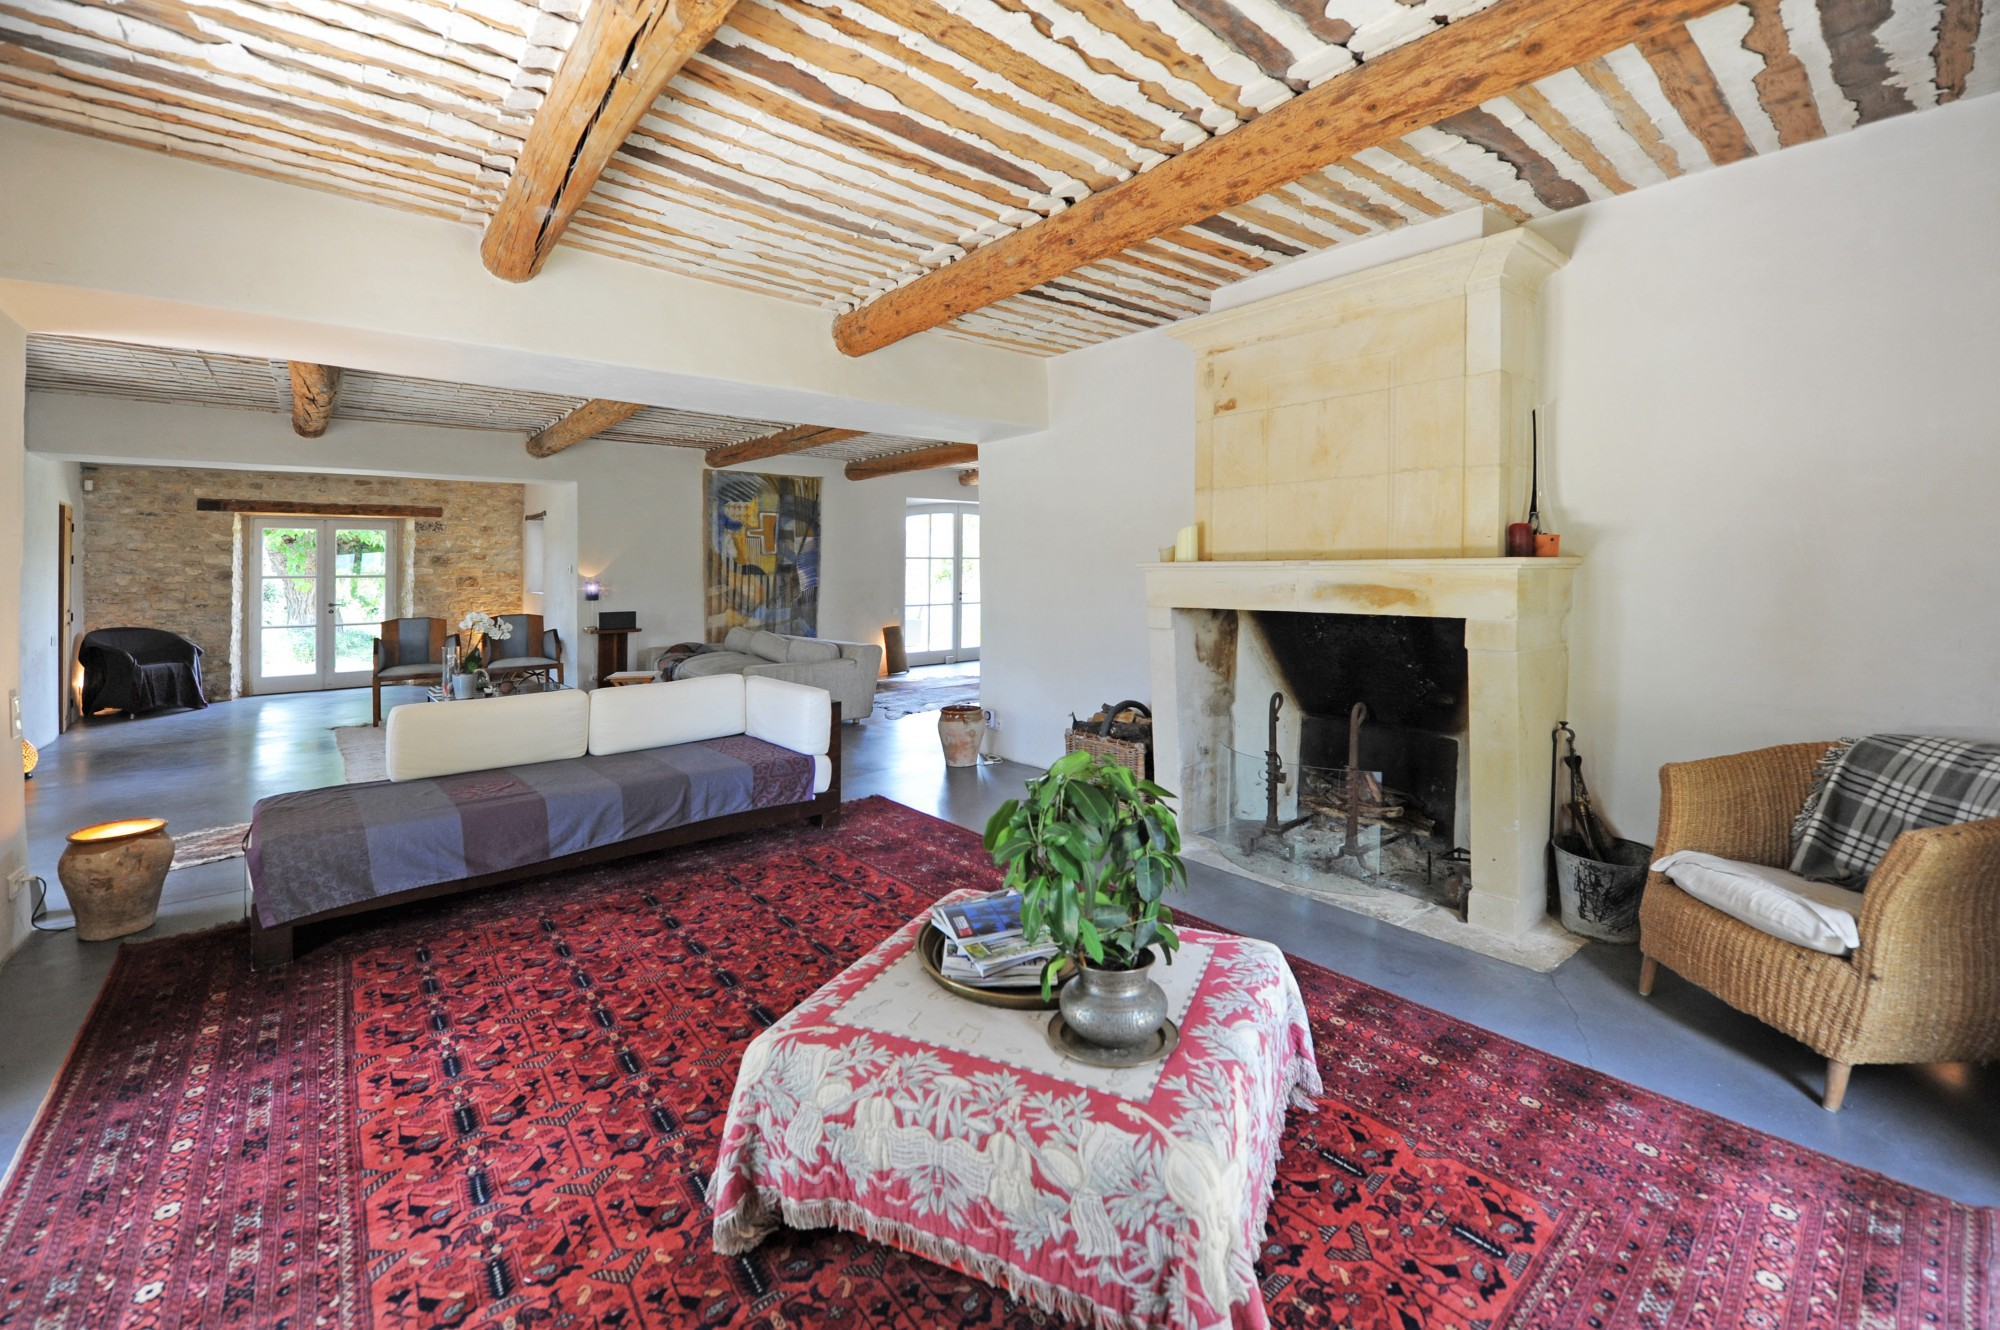 Close to Bonnieux, renovated farmhouse with pool on more than 2 hectares